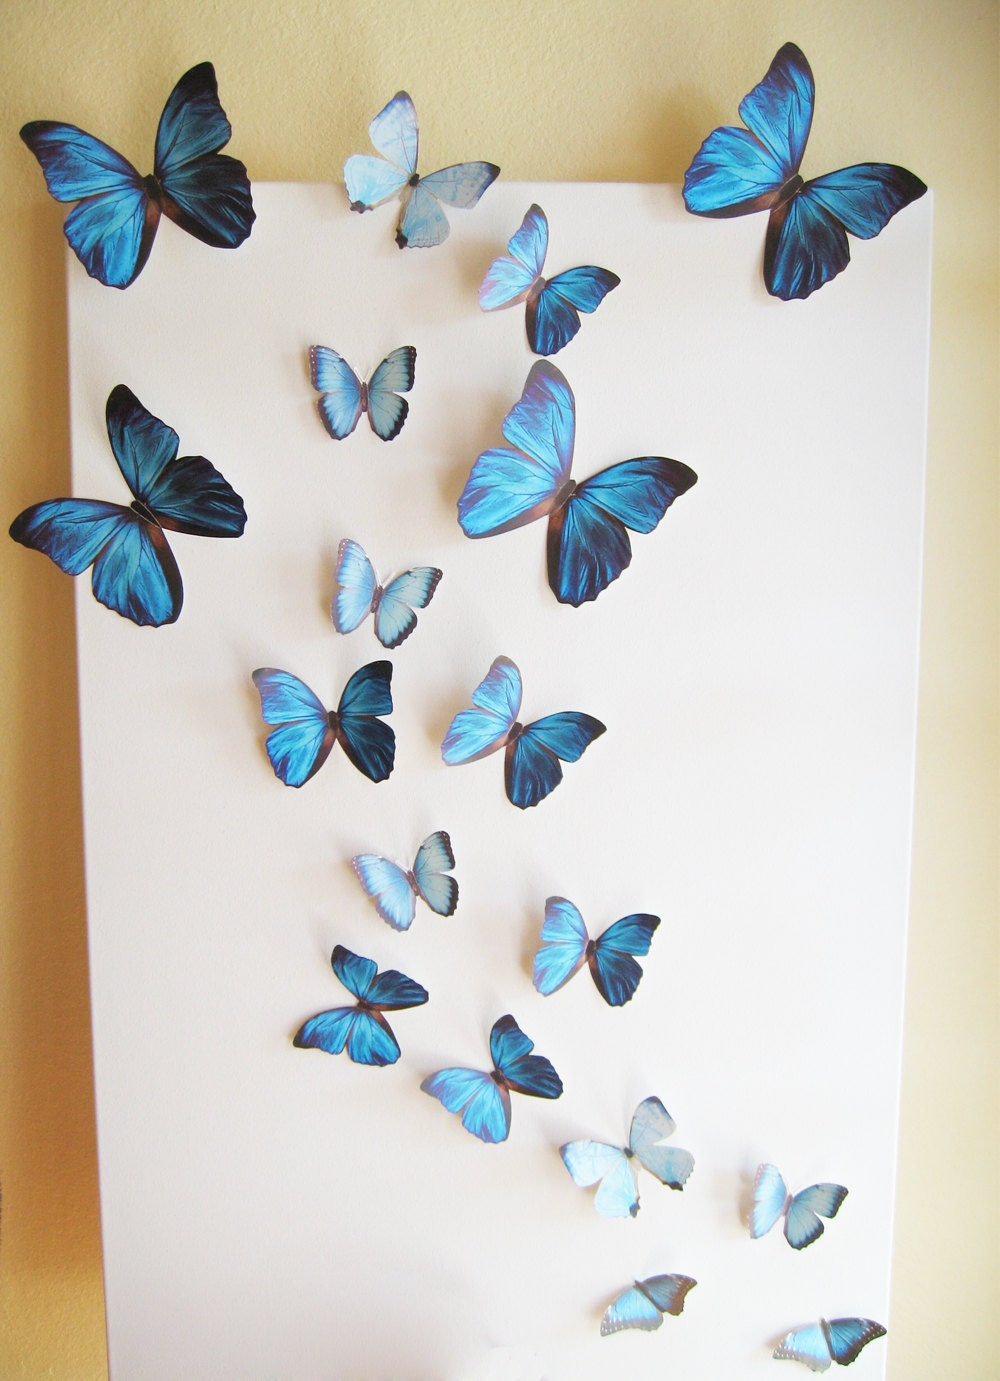 Hanging Butterfly Wall Decor : Butterflies blue something butterfly by simplychiclily